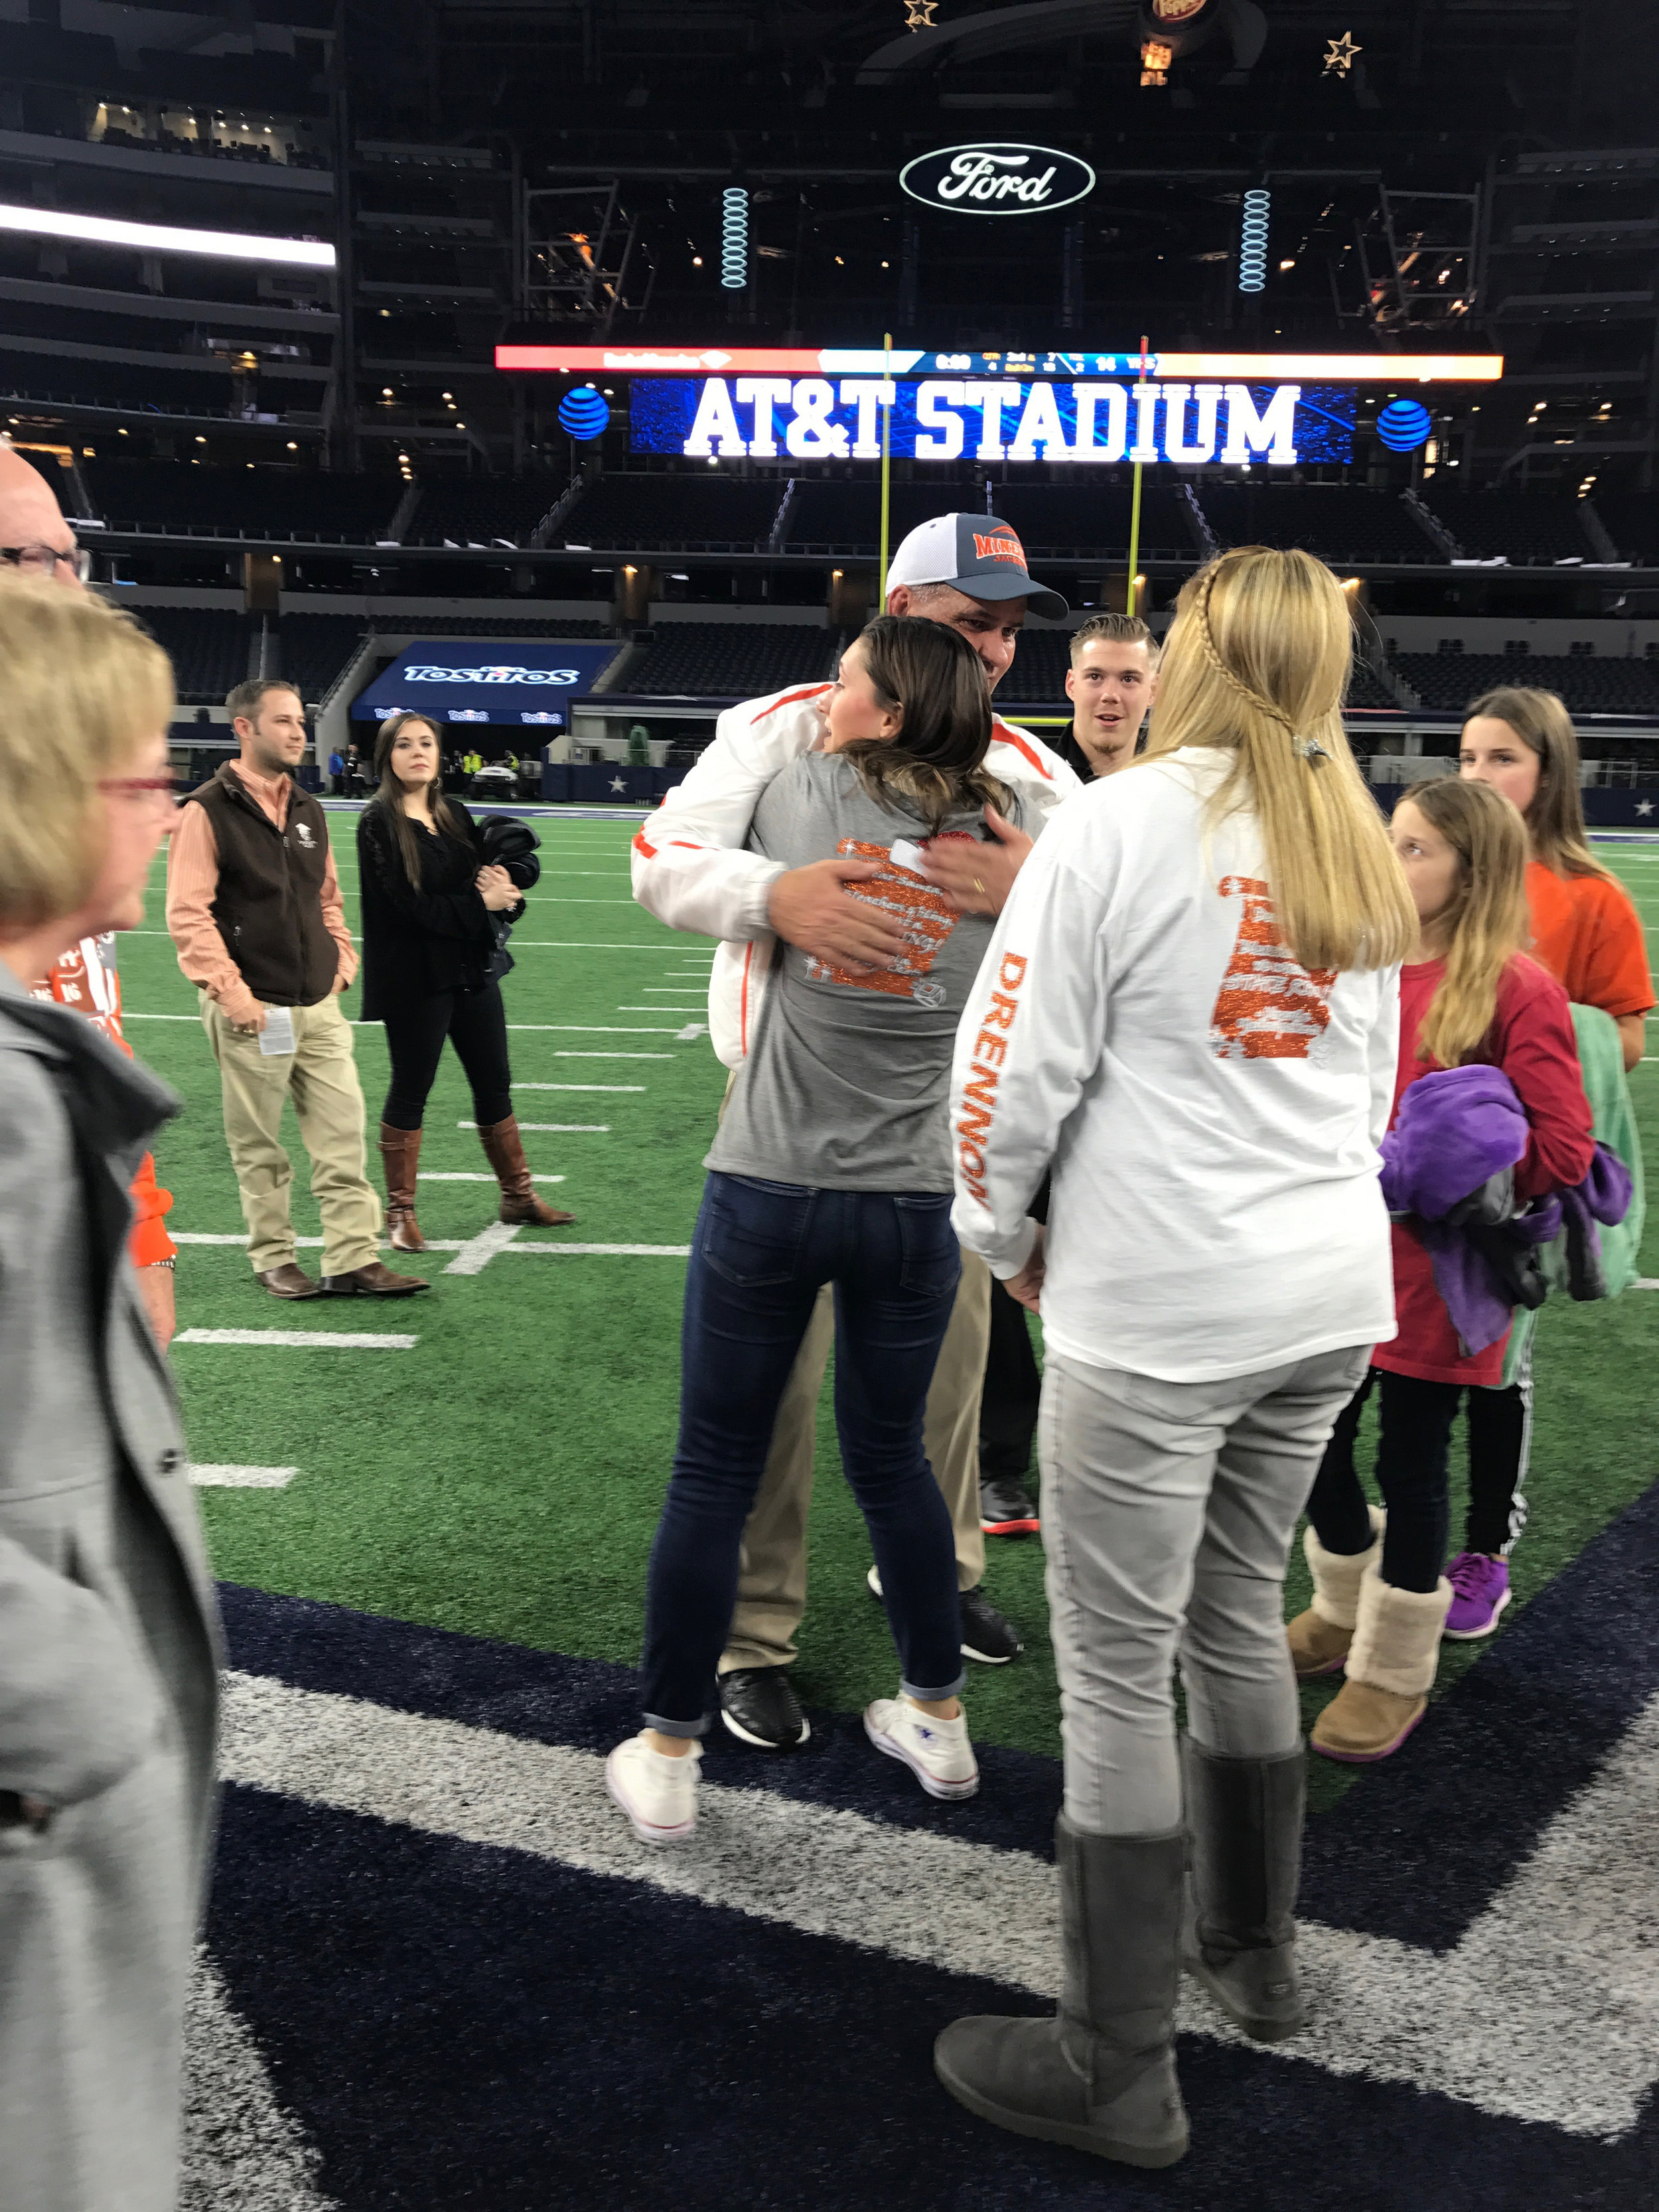 ^ Rebekah and her father, Joe (who was the Athletic Director for Mineola ISD), hug each other in AT&T Stadium after the Yellow Jackets won the 3A State Football Championship in 2016. Ironically, Rebekah is now working at AT&T Stadium.